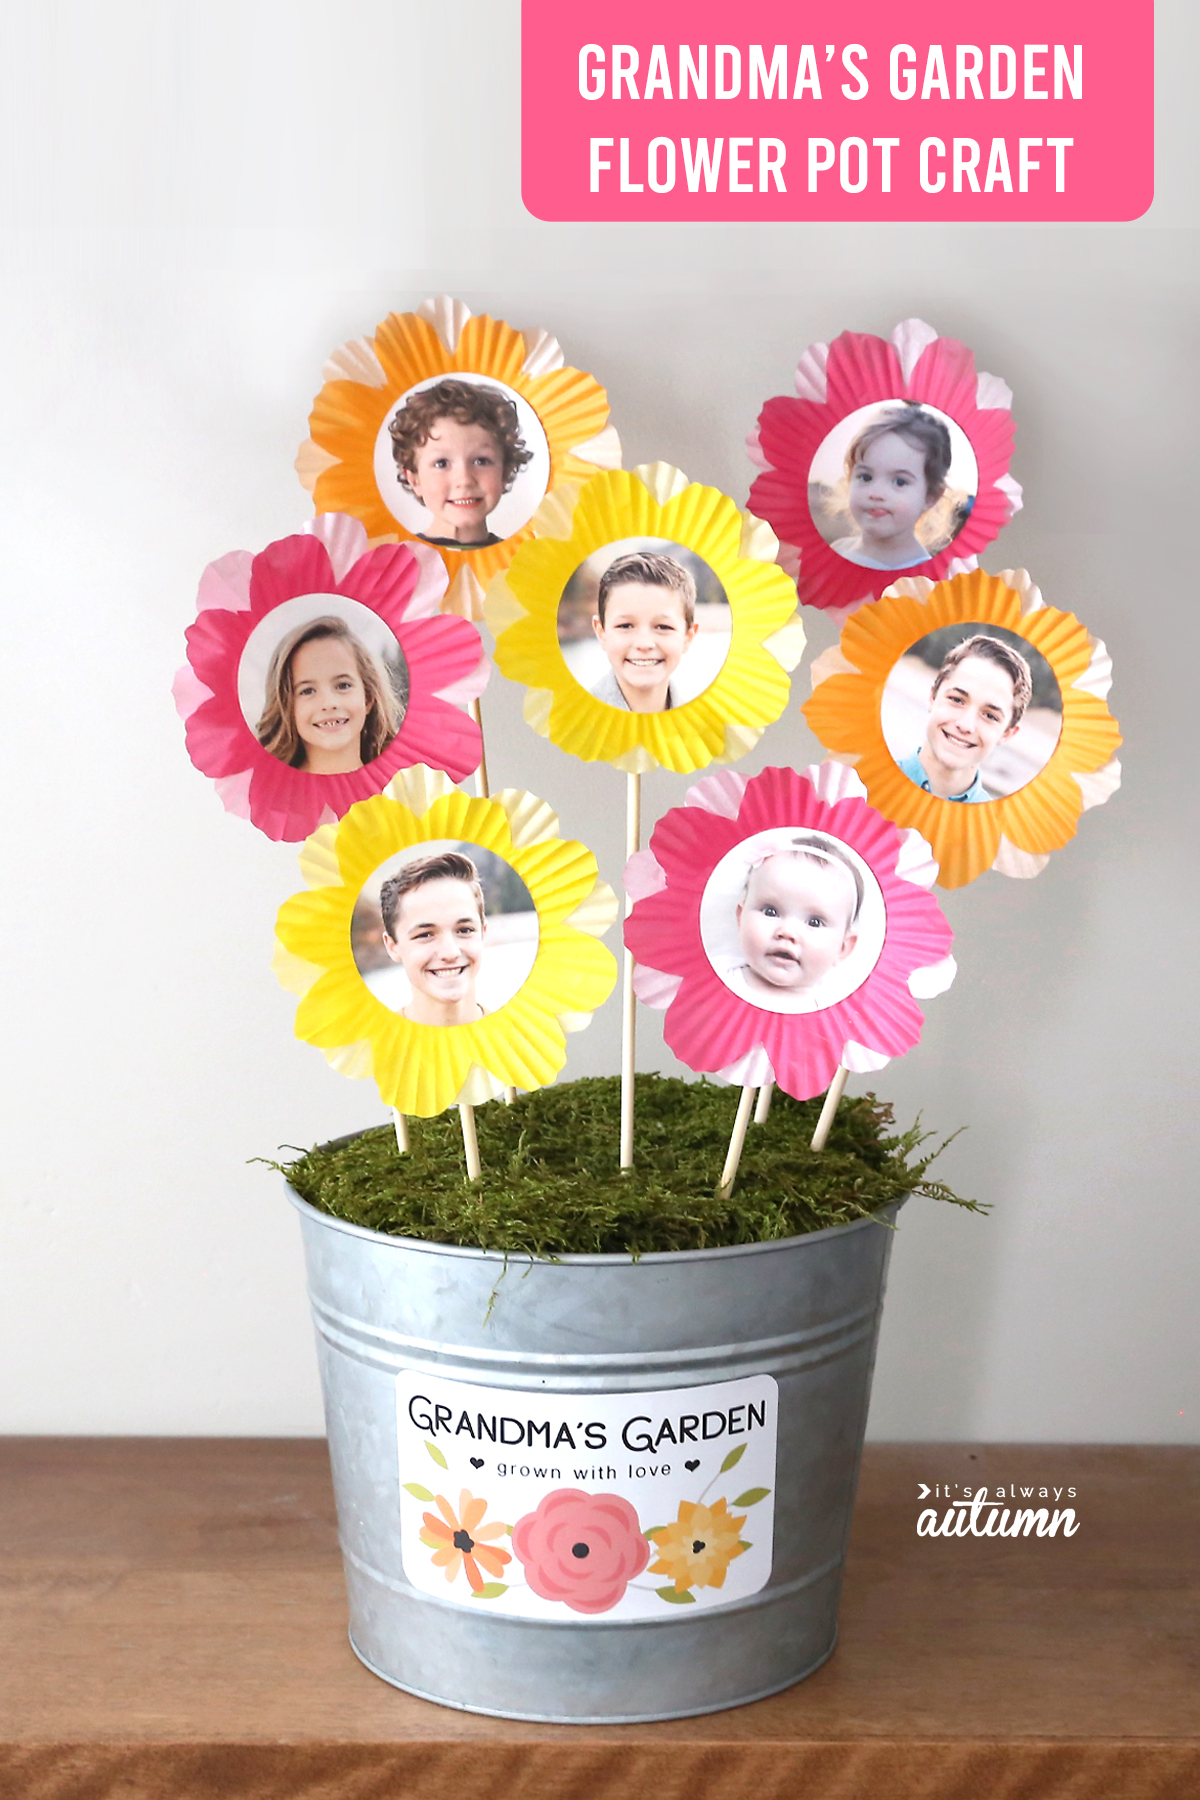 Flower pot with label: Grandma's garden, grown with love; with flowers made from photos and cupcake liners